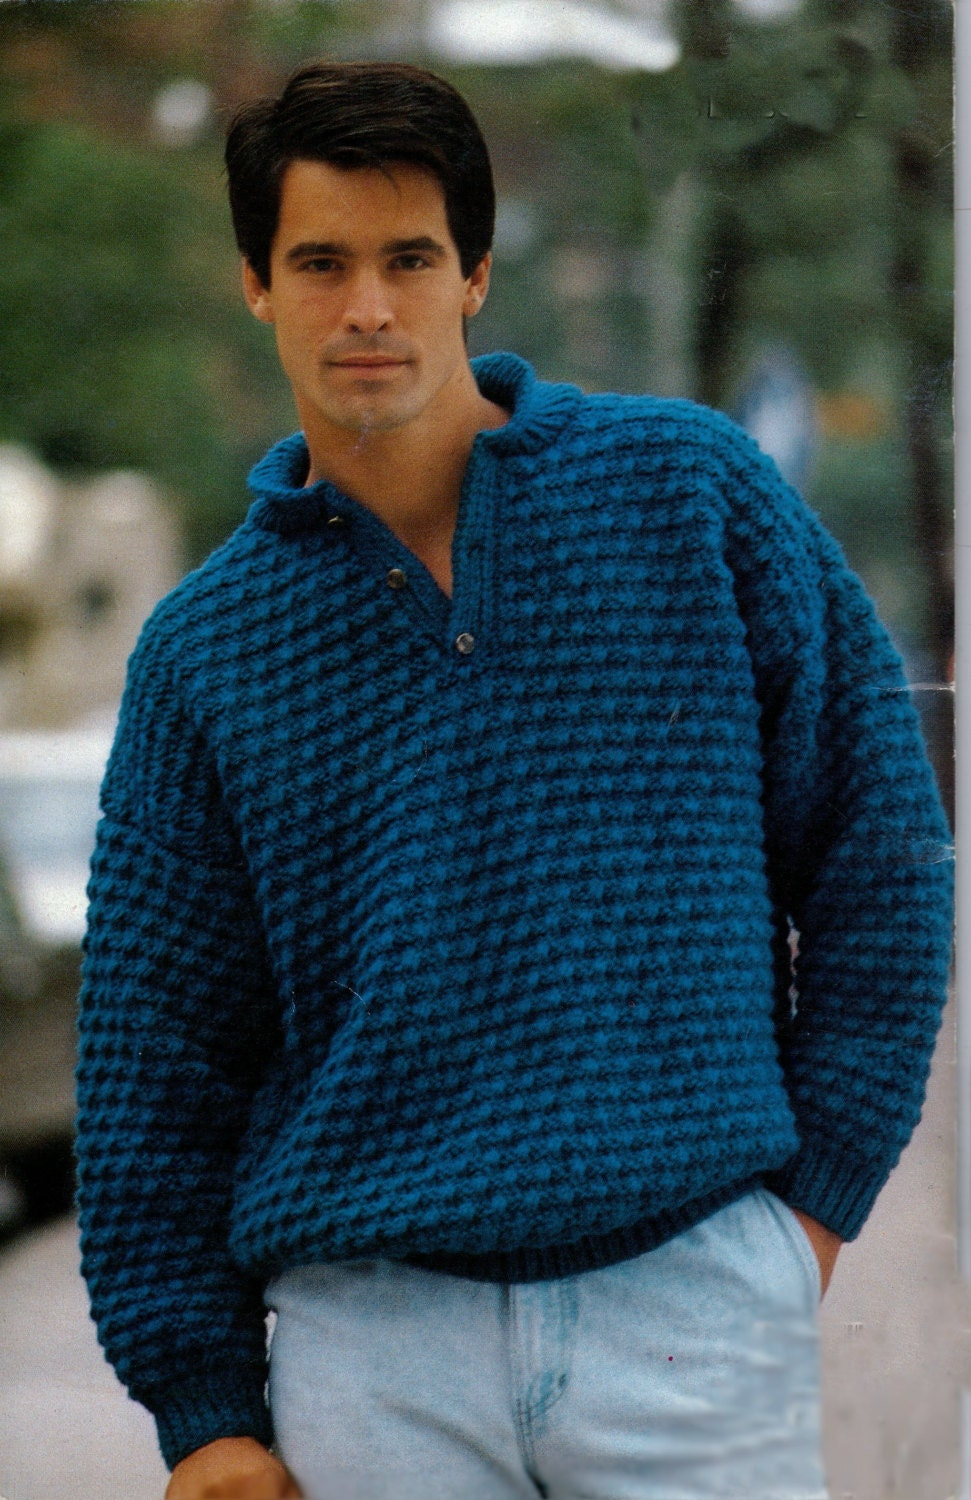 V Neck Knitting Pattern : V neck knitted sweater pattern for men vintage 1080s